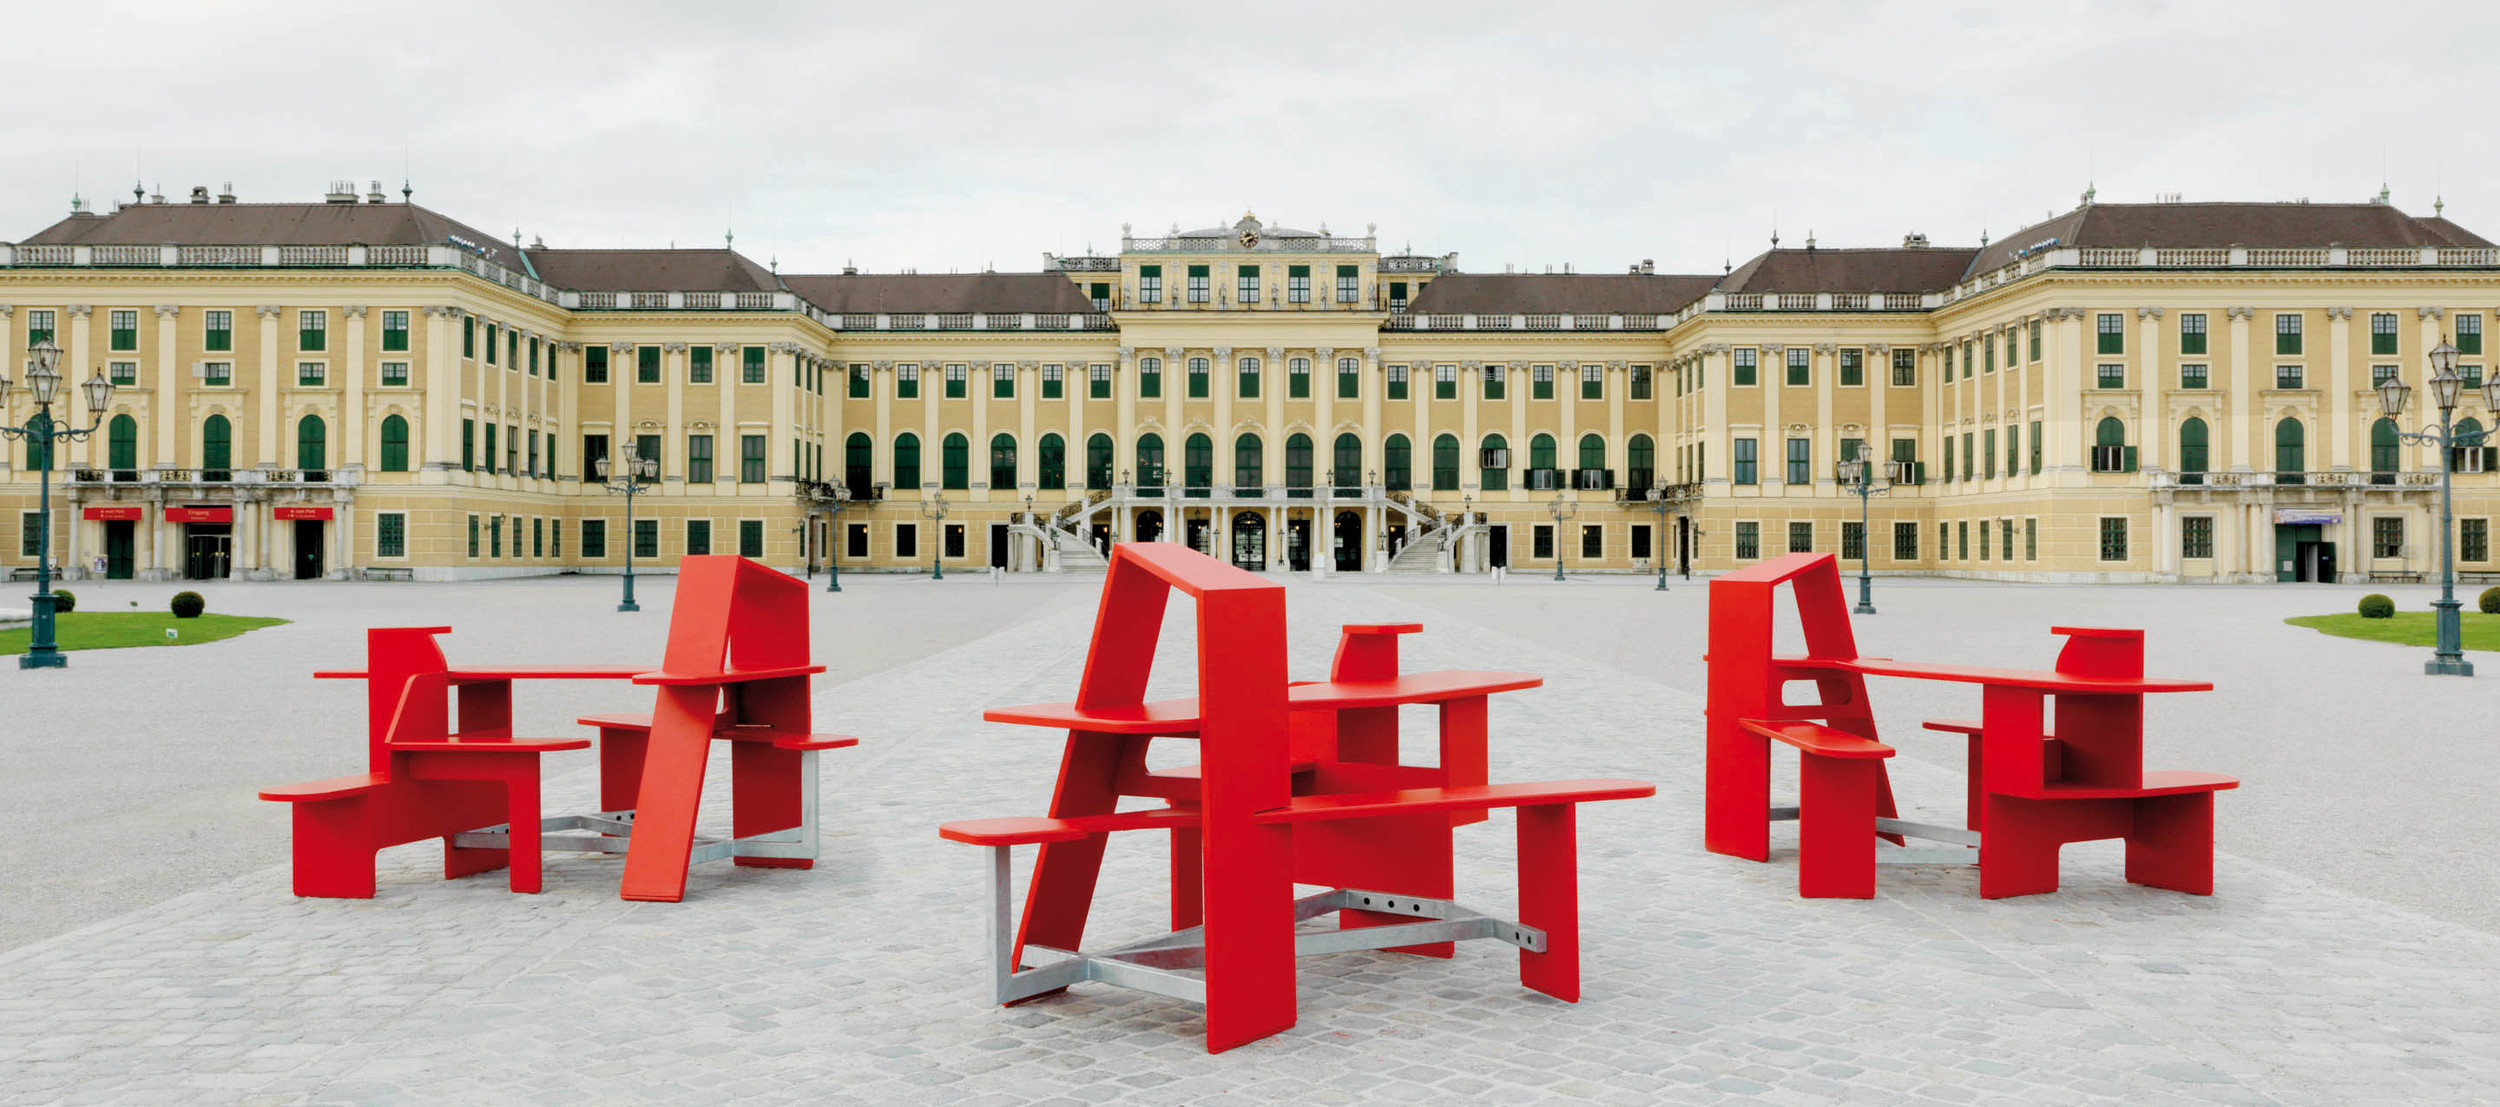 YOU_MAY_visit_schönbrunn_1_grey_P.jpg